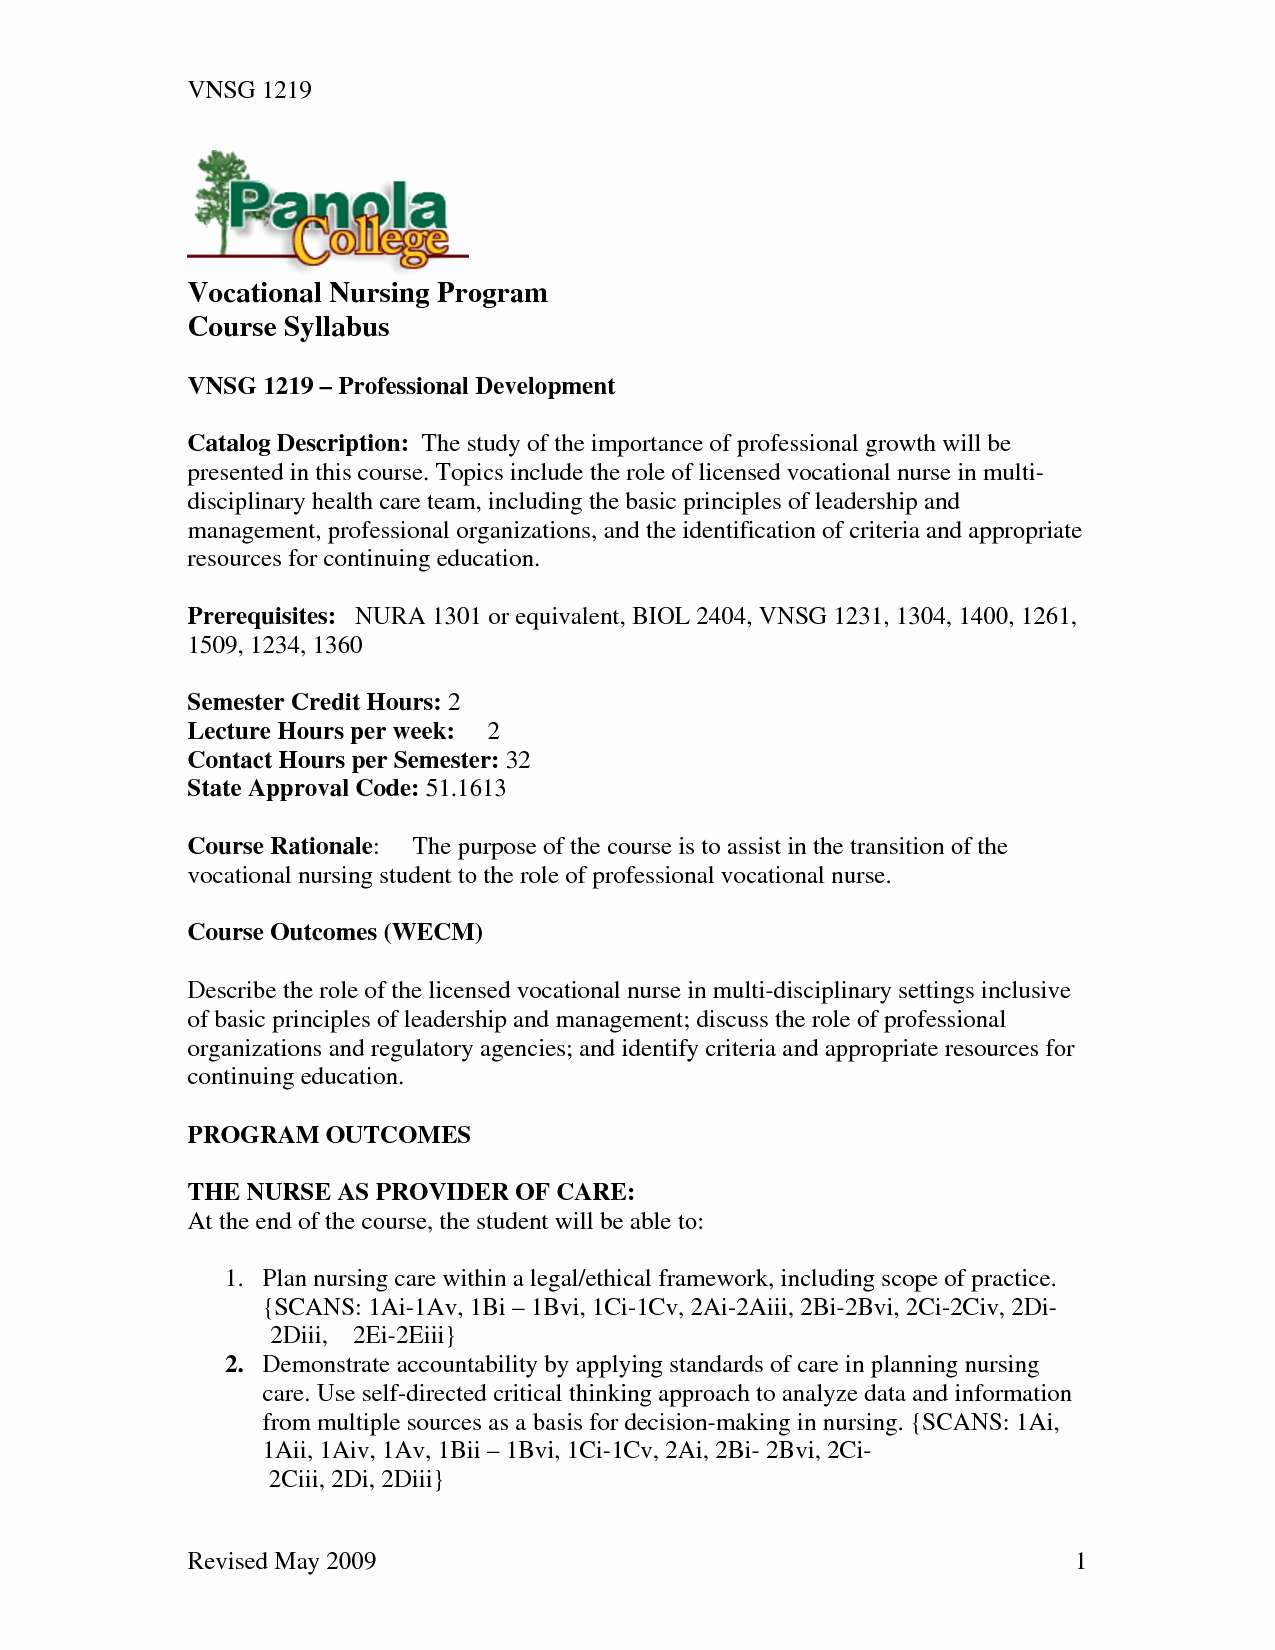 Disciplinary Letter Template - Entry Level Nurse Resume Unique Gallery Lpn Resume Template